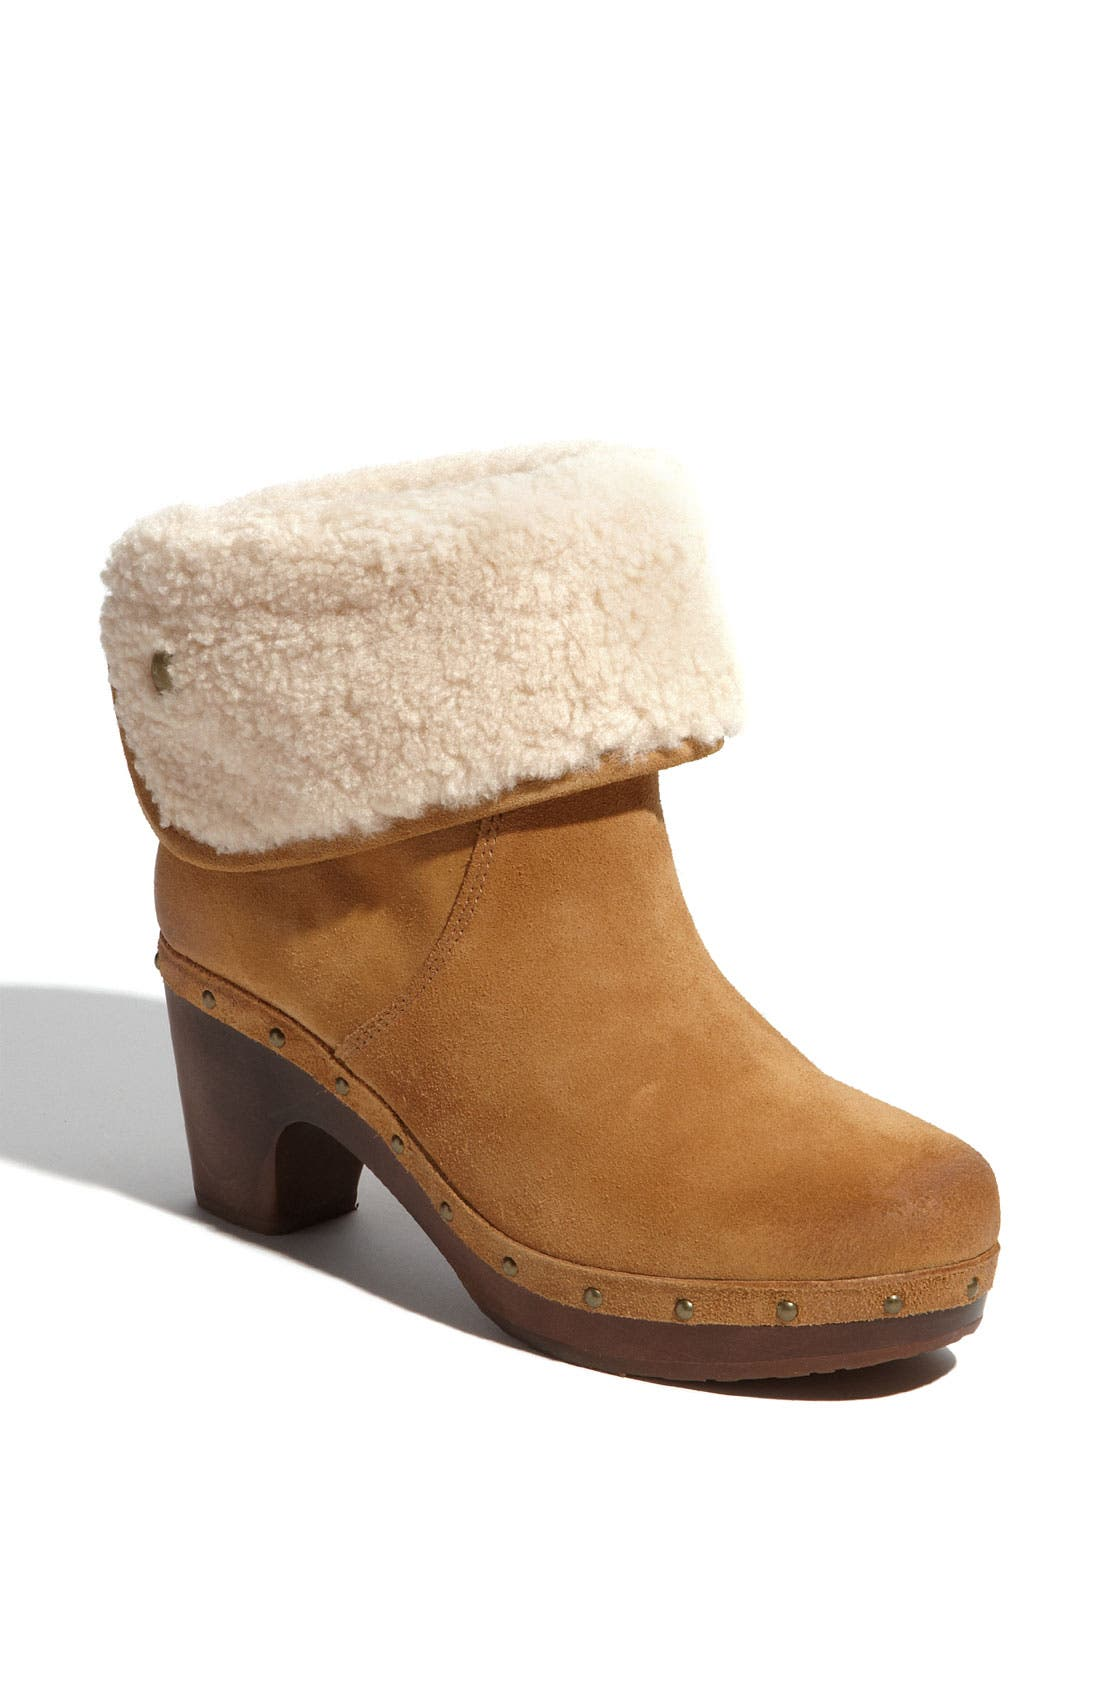 Alternate Image 1 Selected - UGG® Australia 'Lynnea' Ankle Boot